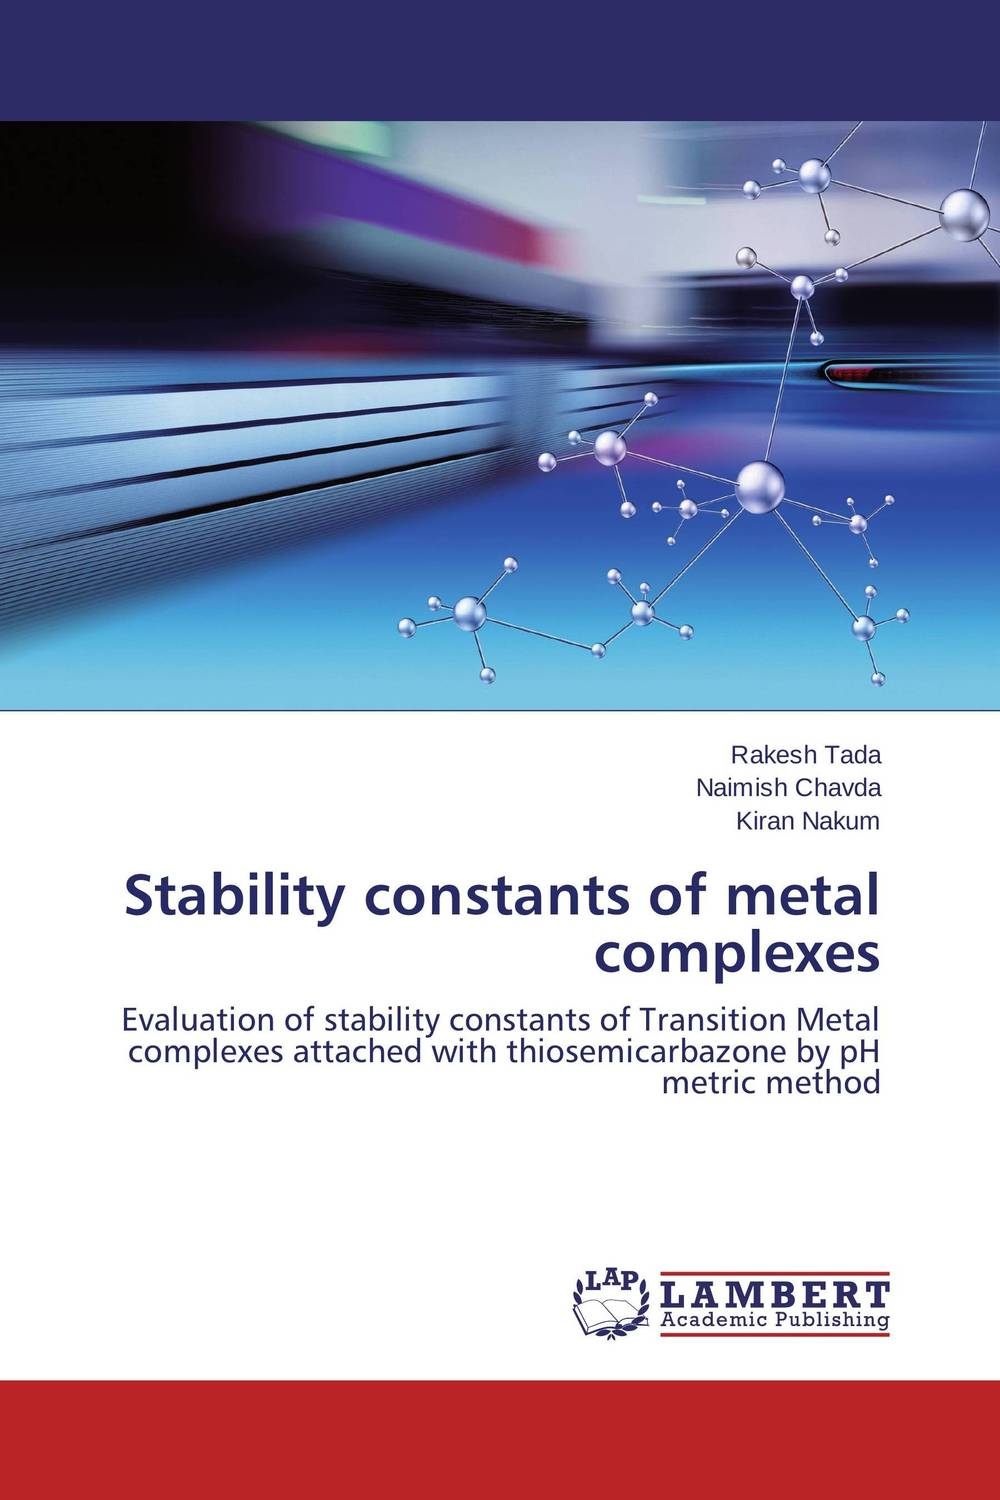 Stability constants of metal complexes omar al obaidi transition metal complexes